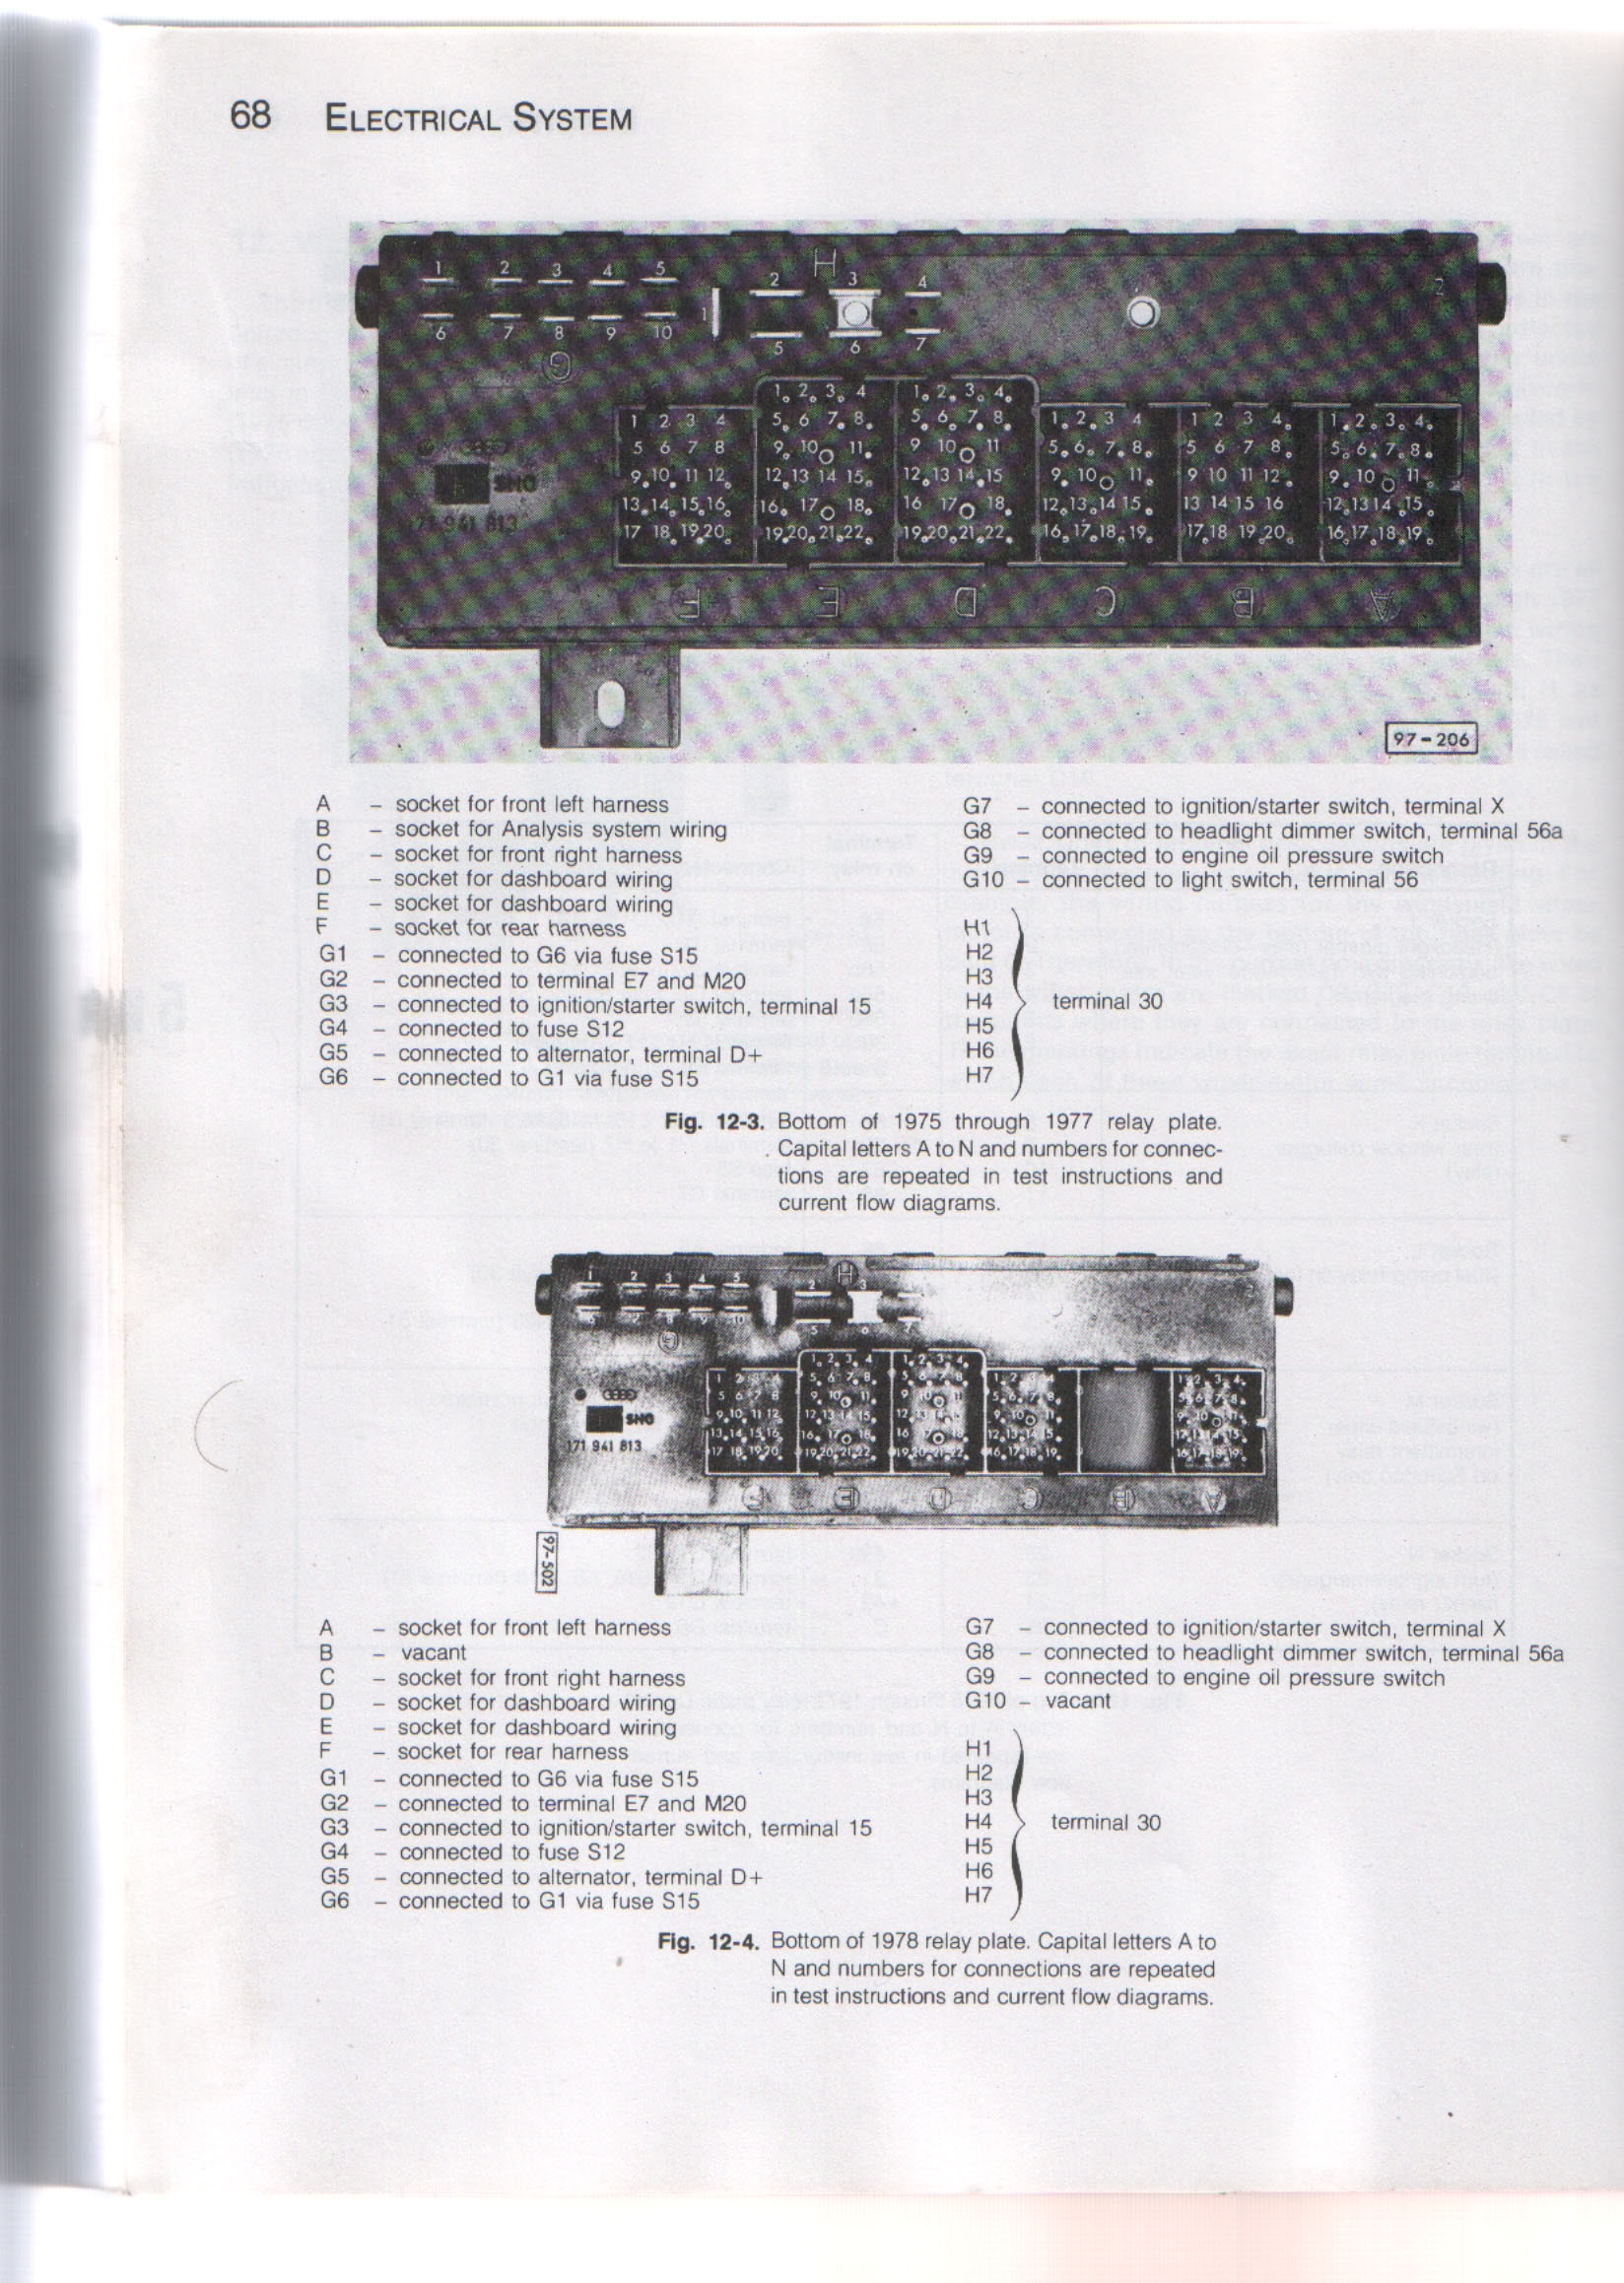 2009 vw rabbit fuse box diagram gAYbQTL 2007 vw rabbit fuse box diagram image details 1982 vw rabbit fuse box at readyjetset.co